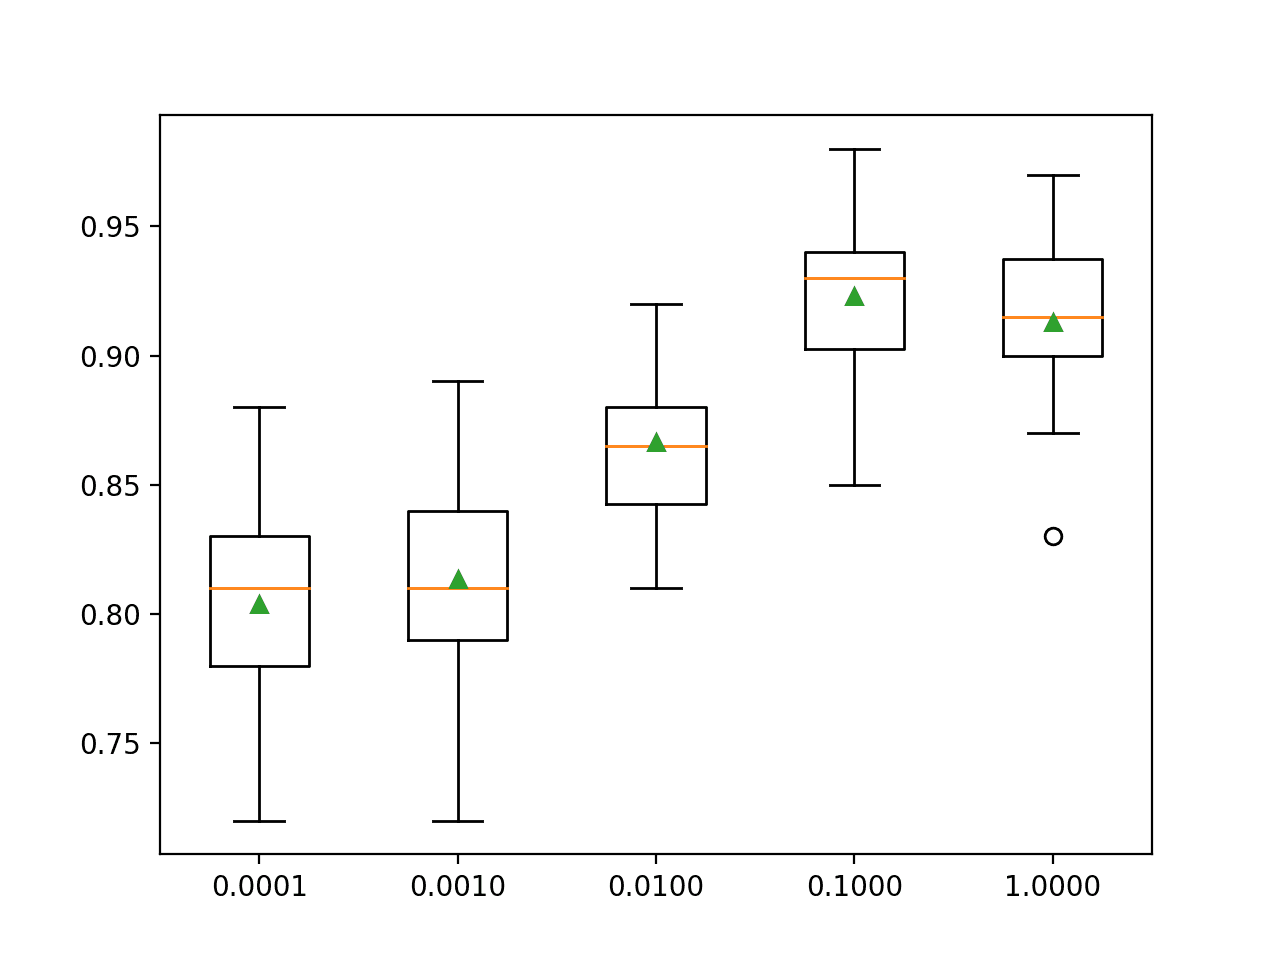 Box Plot of XGBoost Learning Rate vs. Classification Accuracy